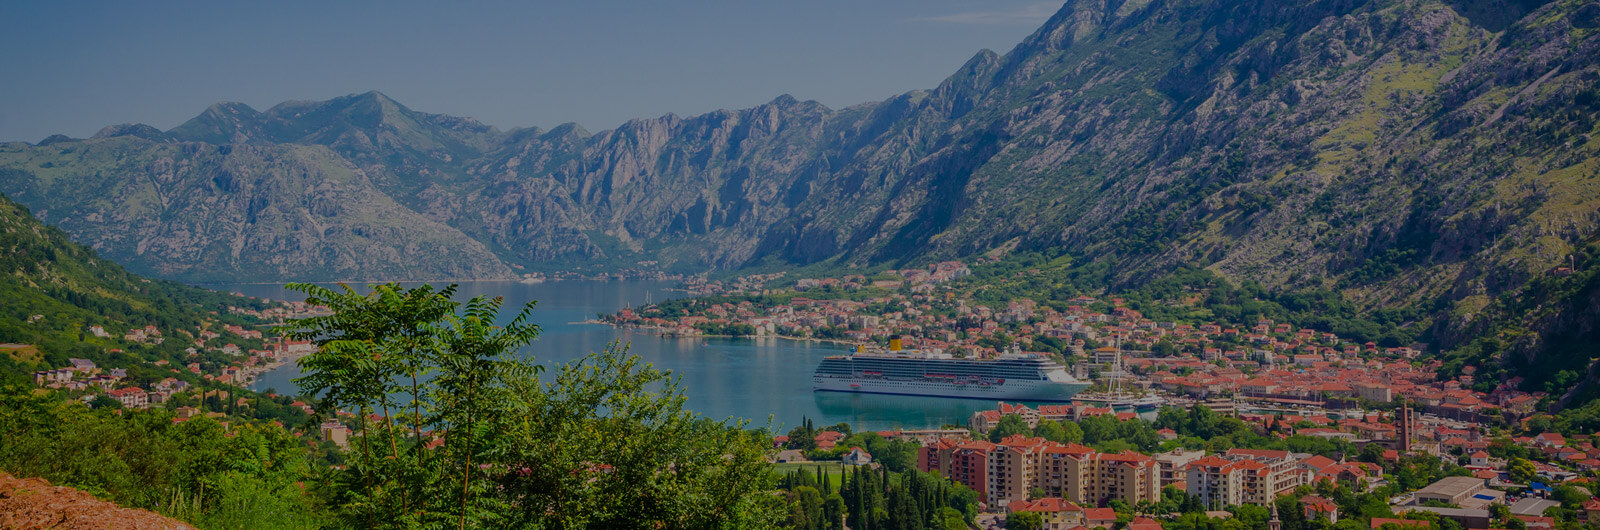 Panoramic view of Kotor Bay